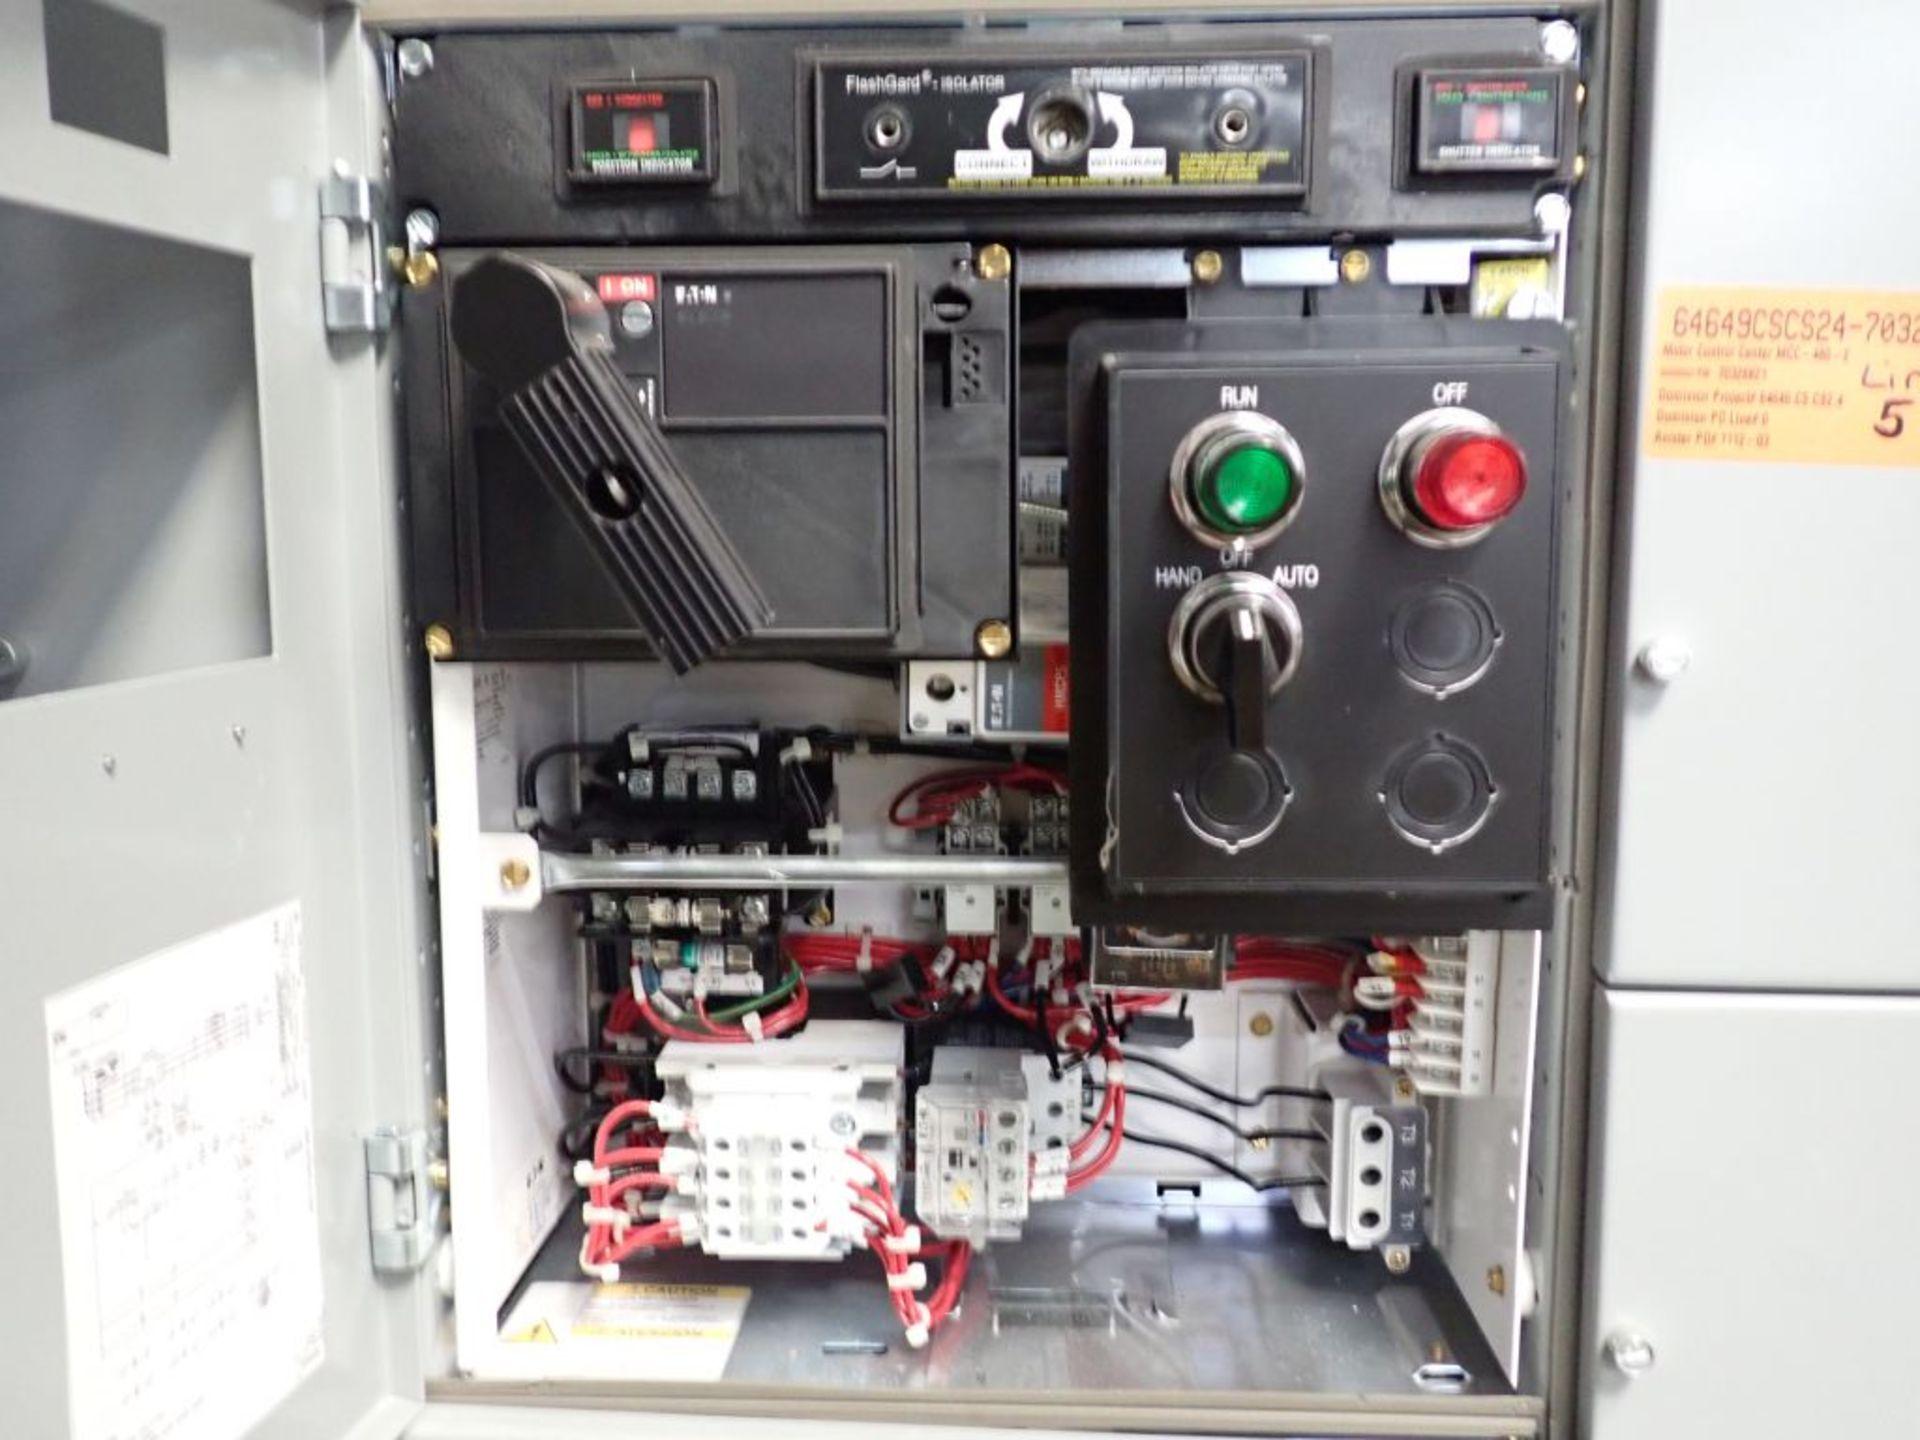 Eaton Freedom 2100 Series Motor Control Center | (11) F206-30A-10HP; (5) F206-15A-10HP; (1) SVX900- - Image 41 of 102